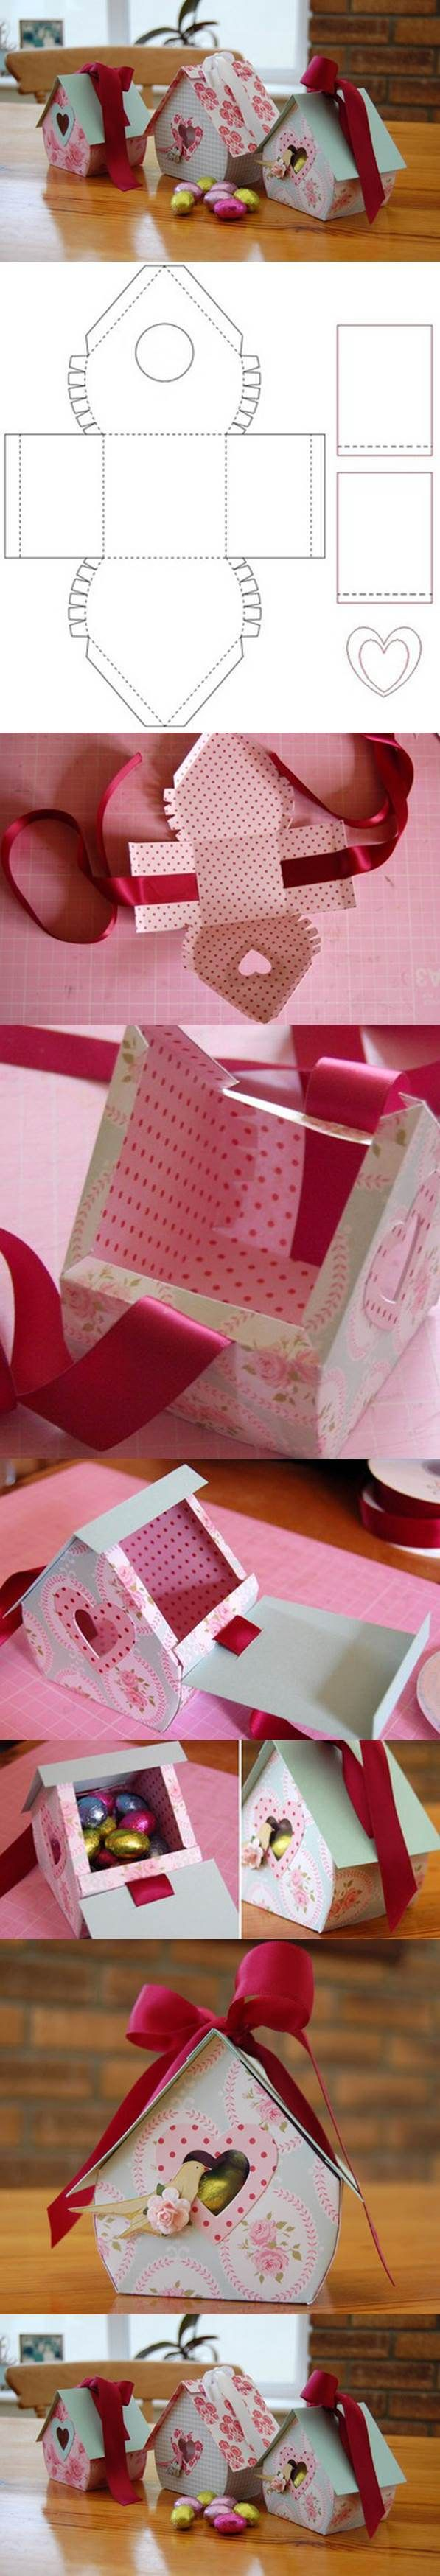 Craft your love bird a diy bird house gift box this St. Valentine's out of paper, glue & ribbon.